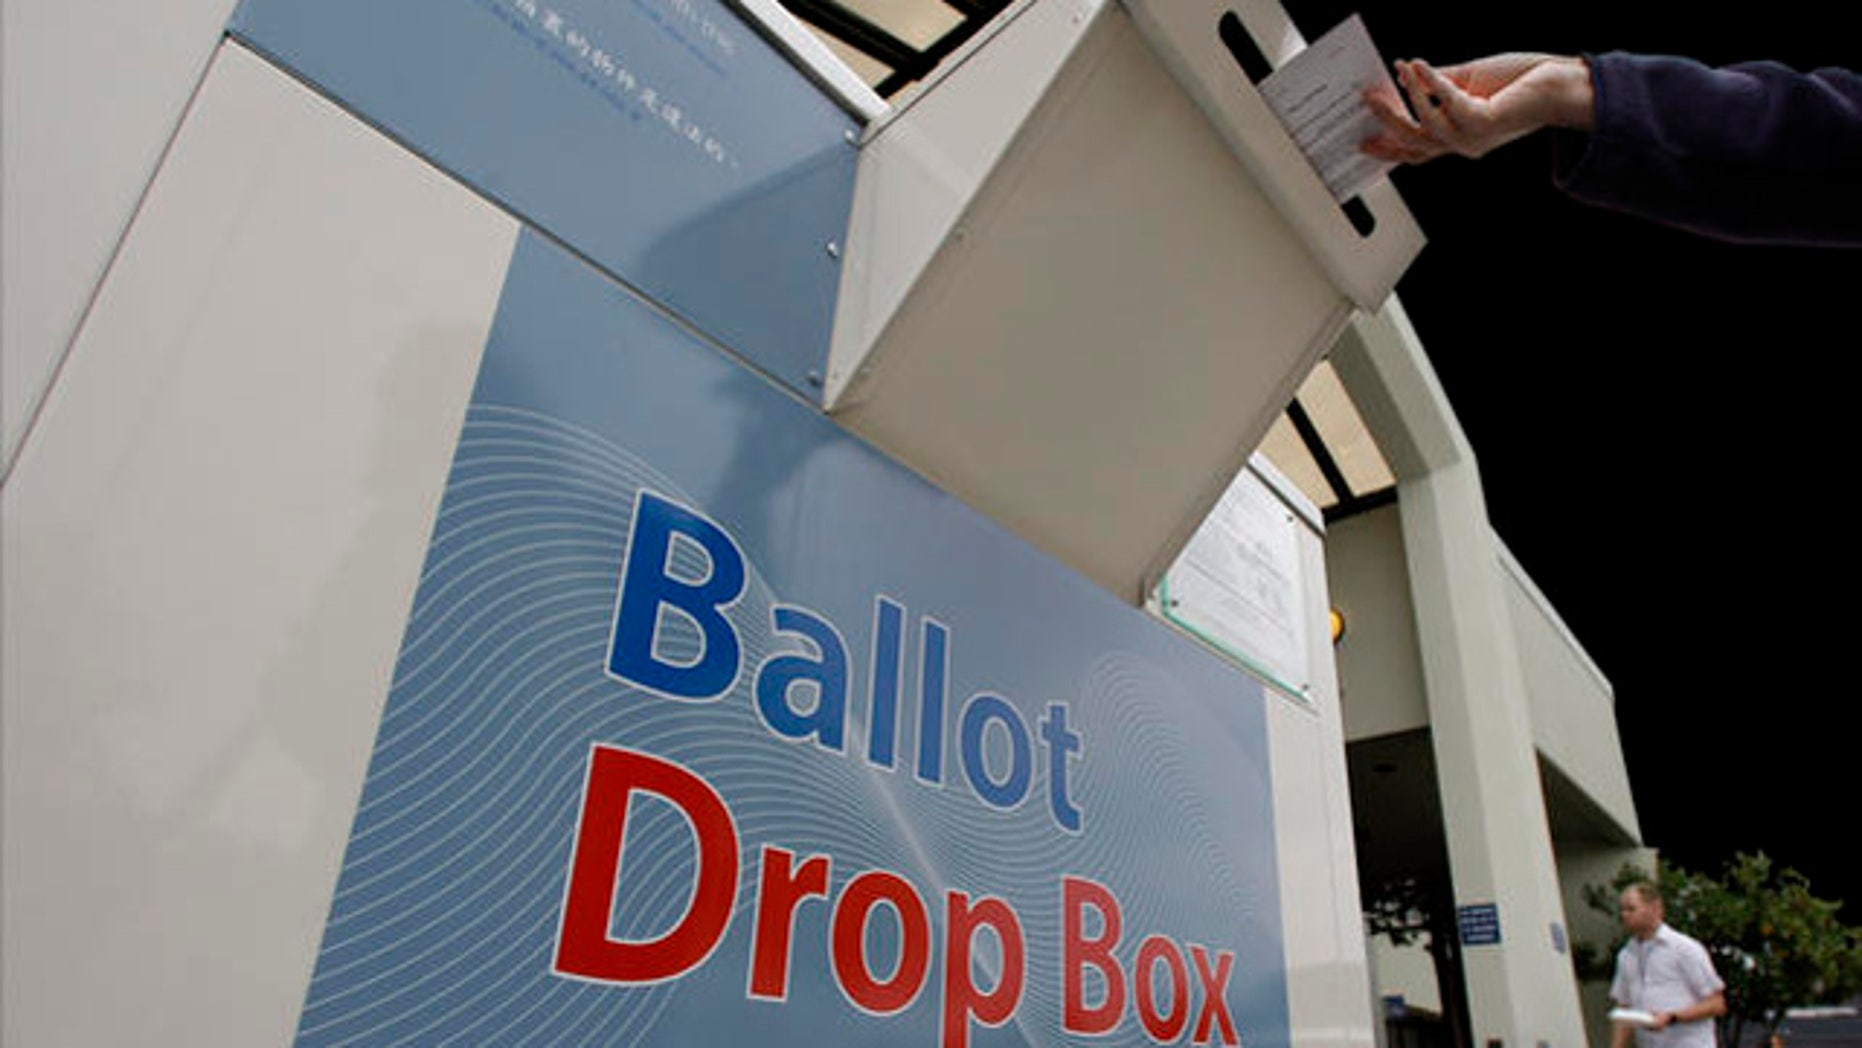 A voter drops an absentee ballot into a collection box Thursday, Oct. 30, 2008, at the King County Elections office in Renton, Wash. In-person accessible voting, on units providing audio and touch-screen ballots in English and Chinese, is available for all King County voters at the site through Saturday, Nov. 1, and on Monday, Nov. 3. (AP Photo/Elaine Thompson)